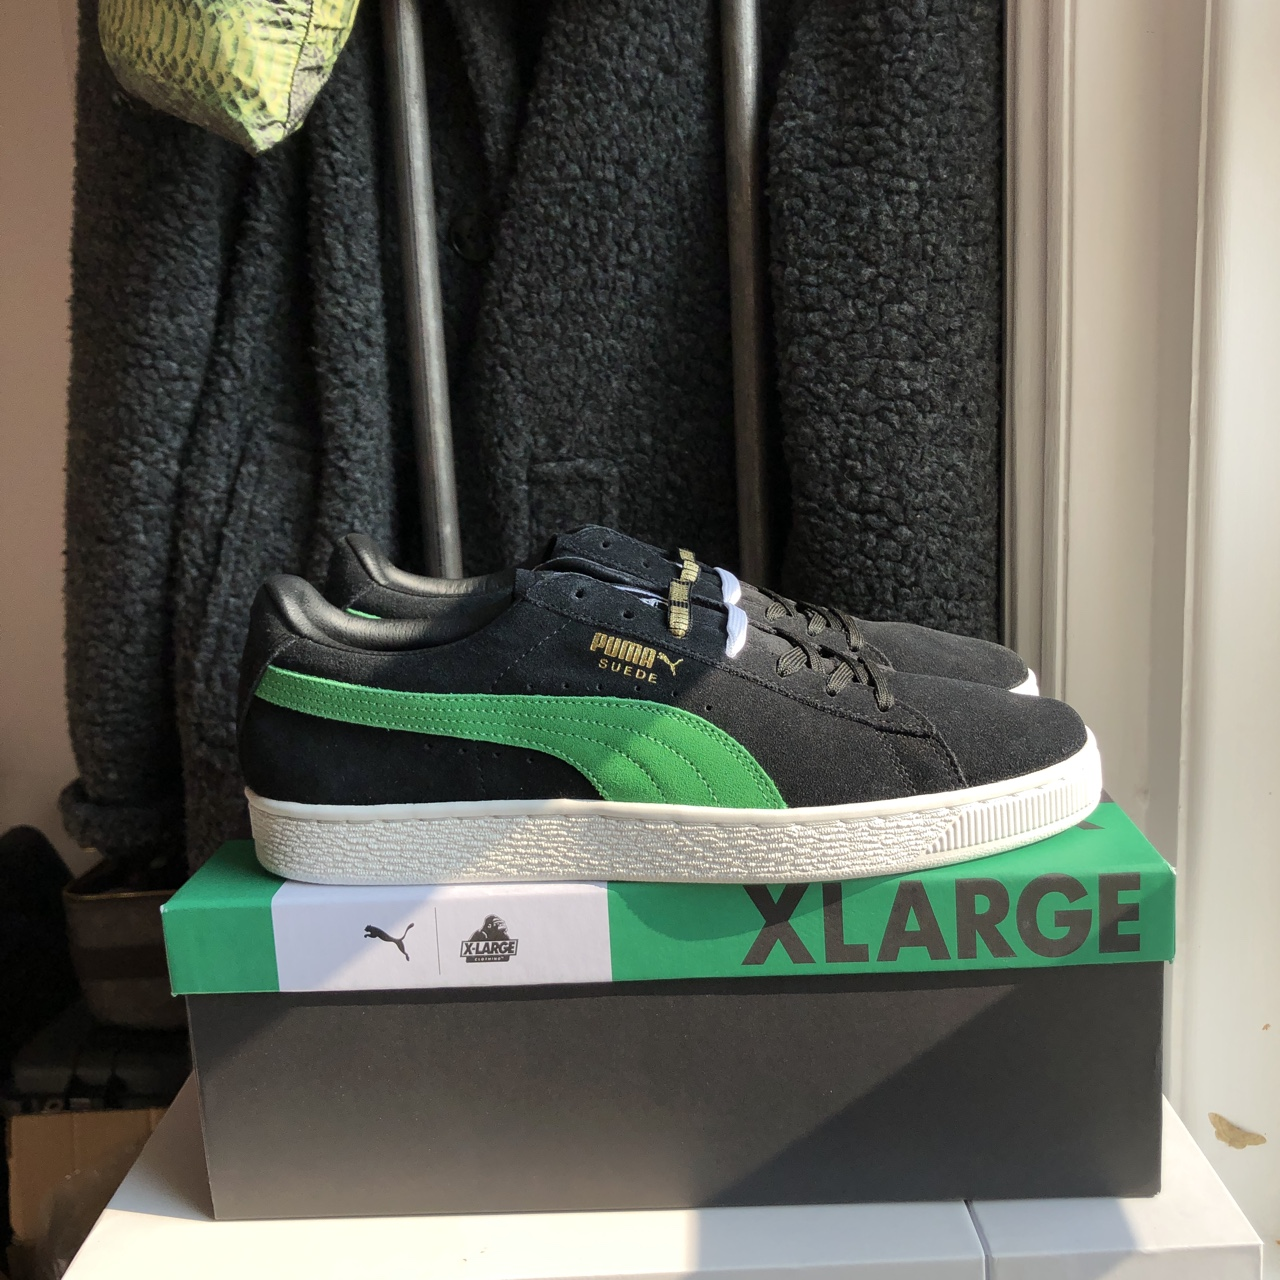 new product 689ef 240d0 BNWT puma suede XLarge 50 yr anniversary re release ...